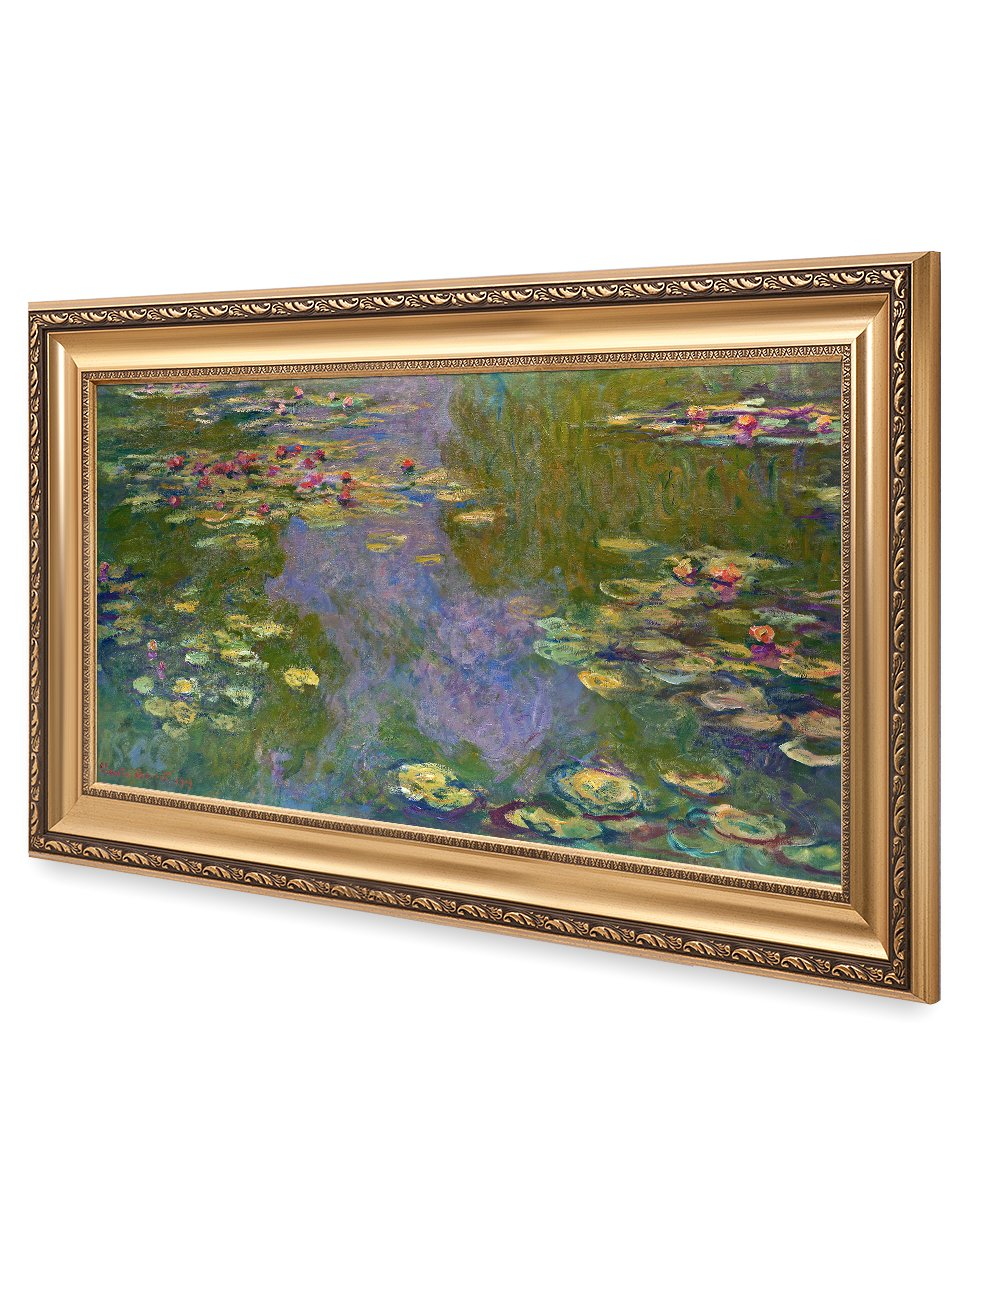 DECORARTS – Water Lilies Claude Monet Giclee Fine Art Print in Embossed Gold Frame. Framed Size 36×22